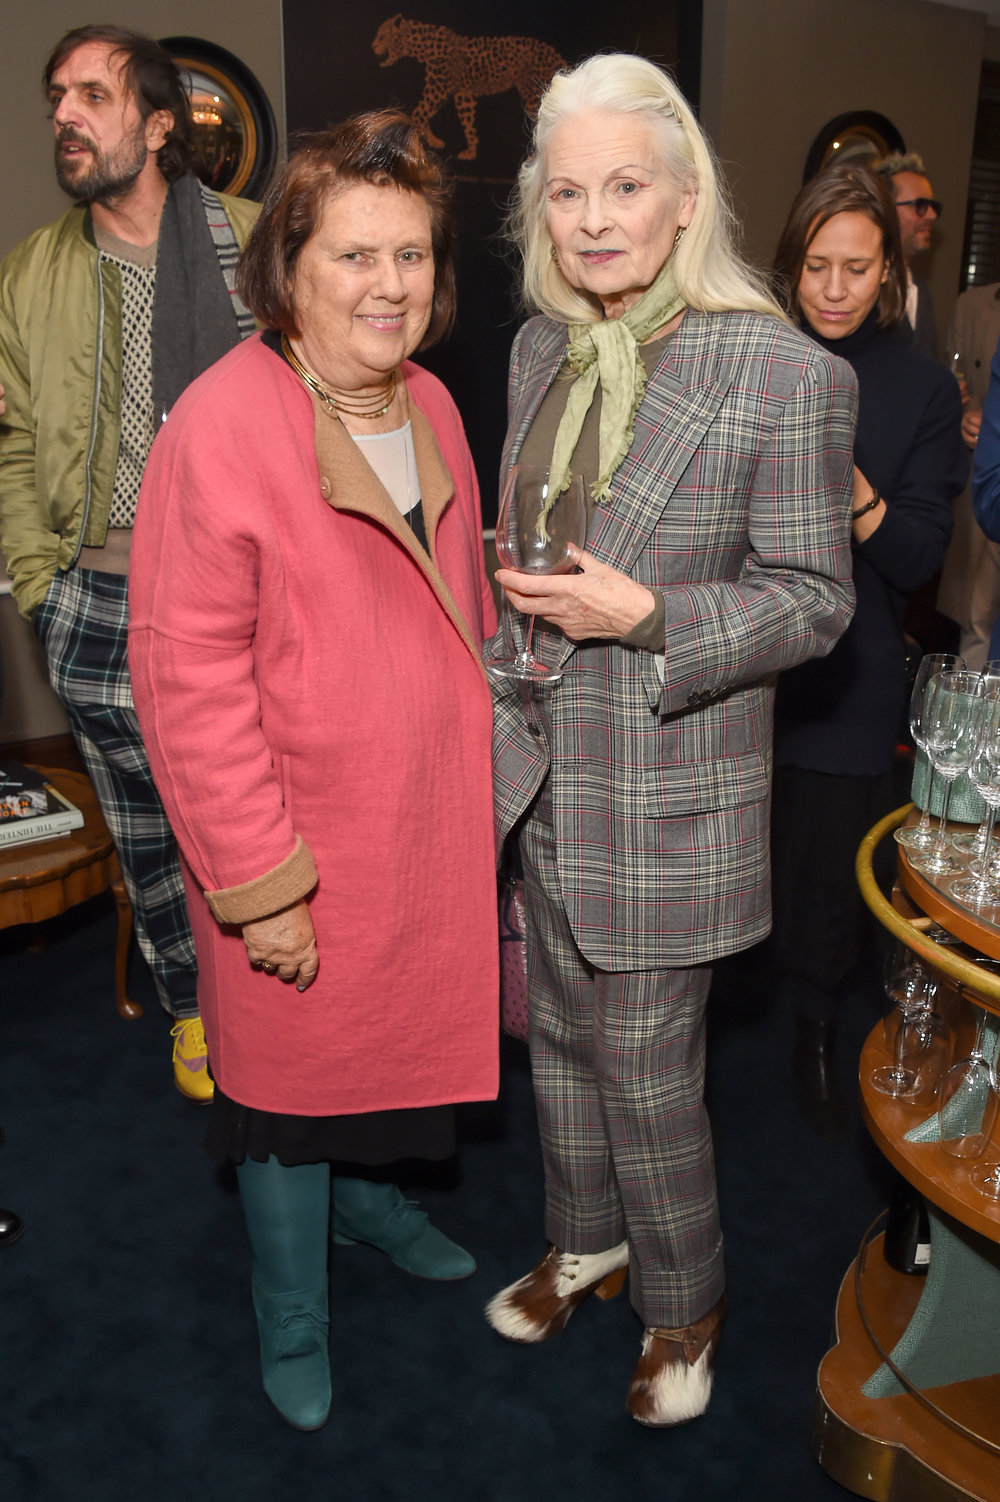 Suzy Menkes and Dame Vivienne Westood. Courtesy of Dave Benett.